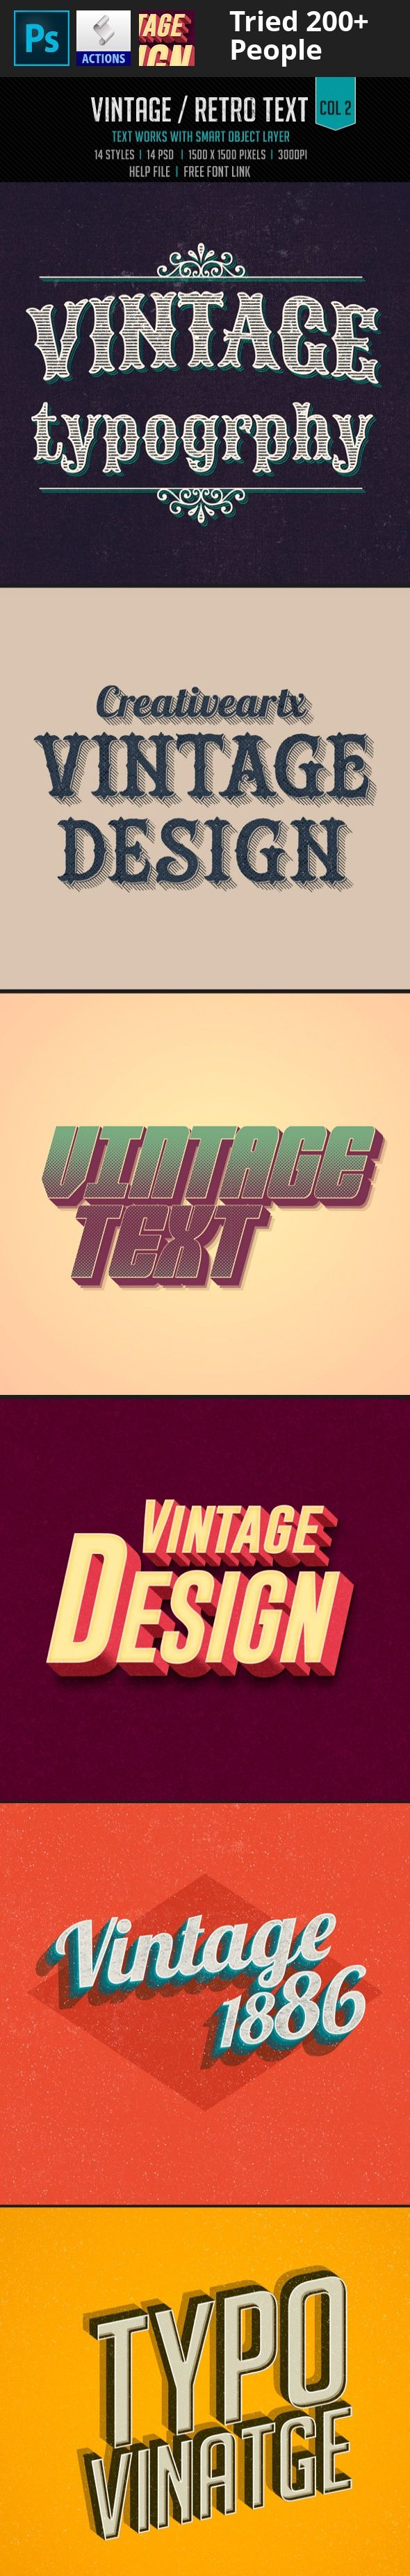 3d, add-on, badge, classic, effect, grunge, label, layer, logo, mockup, old school, old text, photoshop, psd, retro, retro text, ribbon, style, template, text, text effects, text style, typography, vintage 14 Text style   14 Layered PSDs   Text works with smart object layer   Easily modify text colors and patterns   1500×1500 pixels 300dpi   Help file and Free font link attached   Please rate it!   ................MORE TEXT EFFECTS….................   http://graphicriver.net/colle...